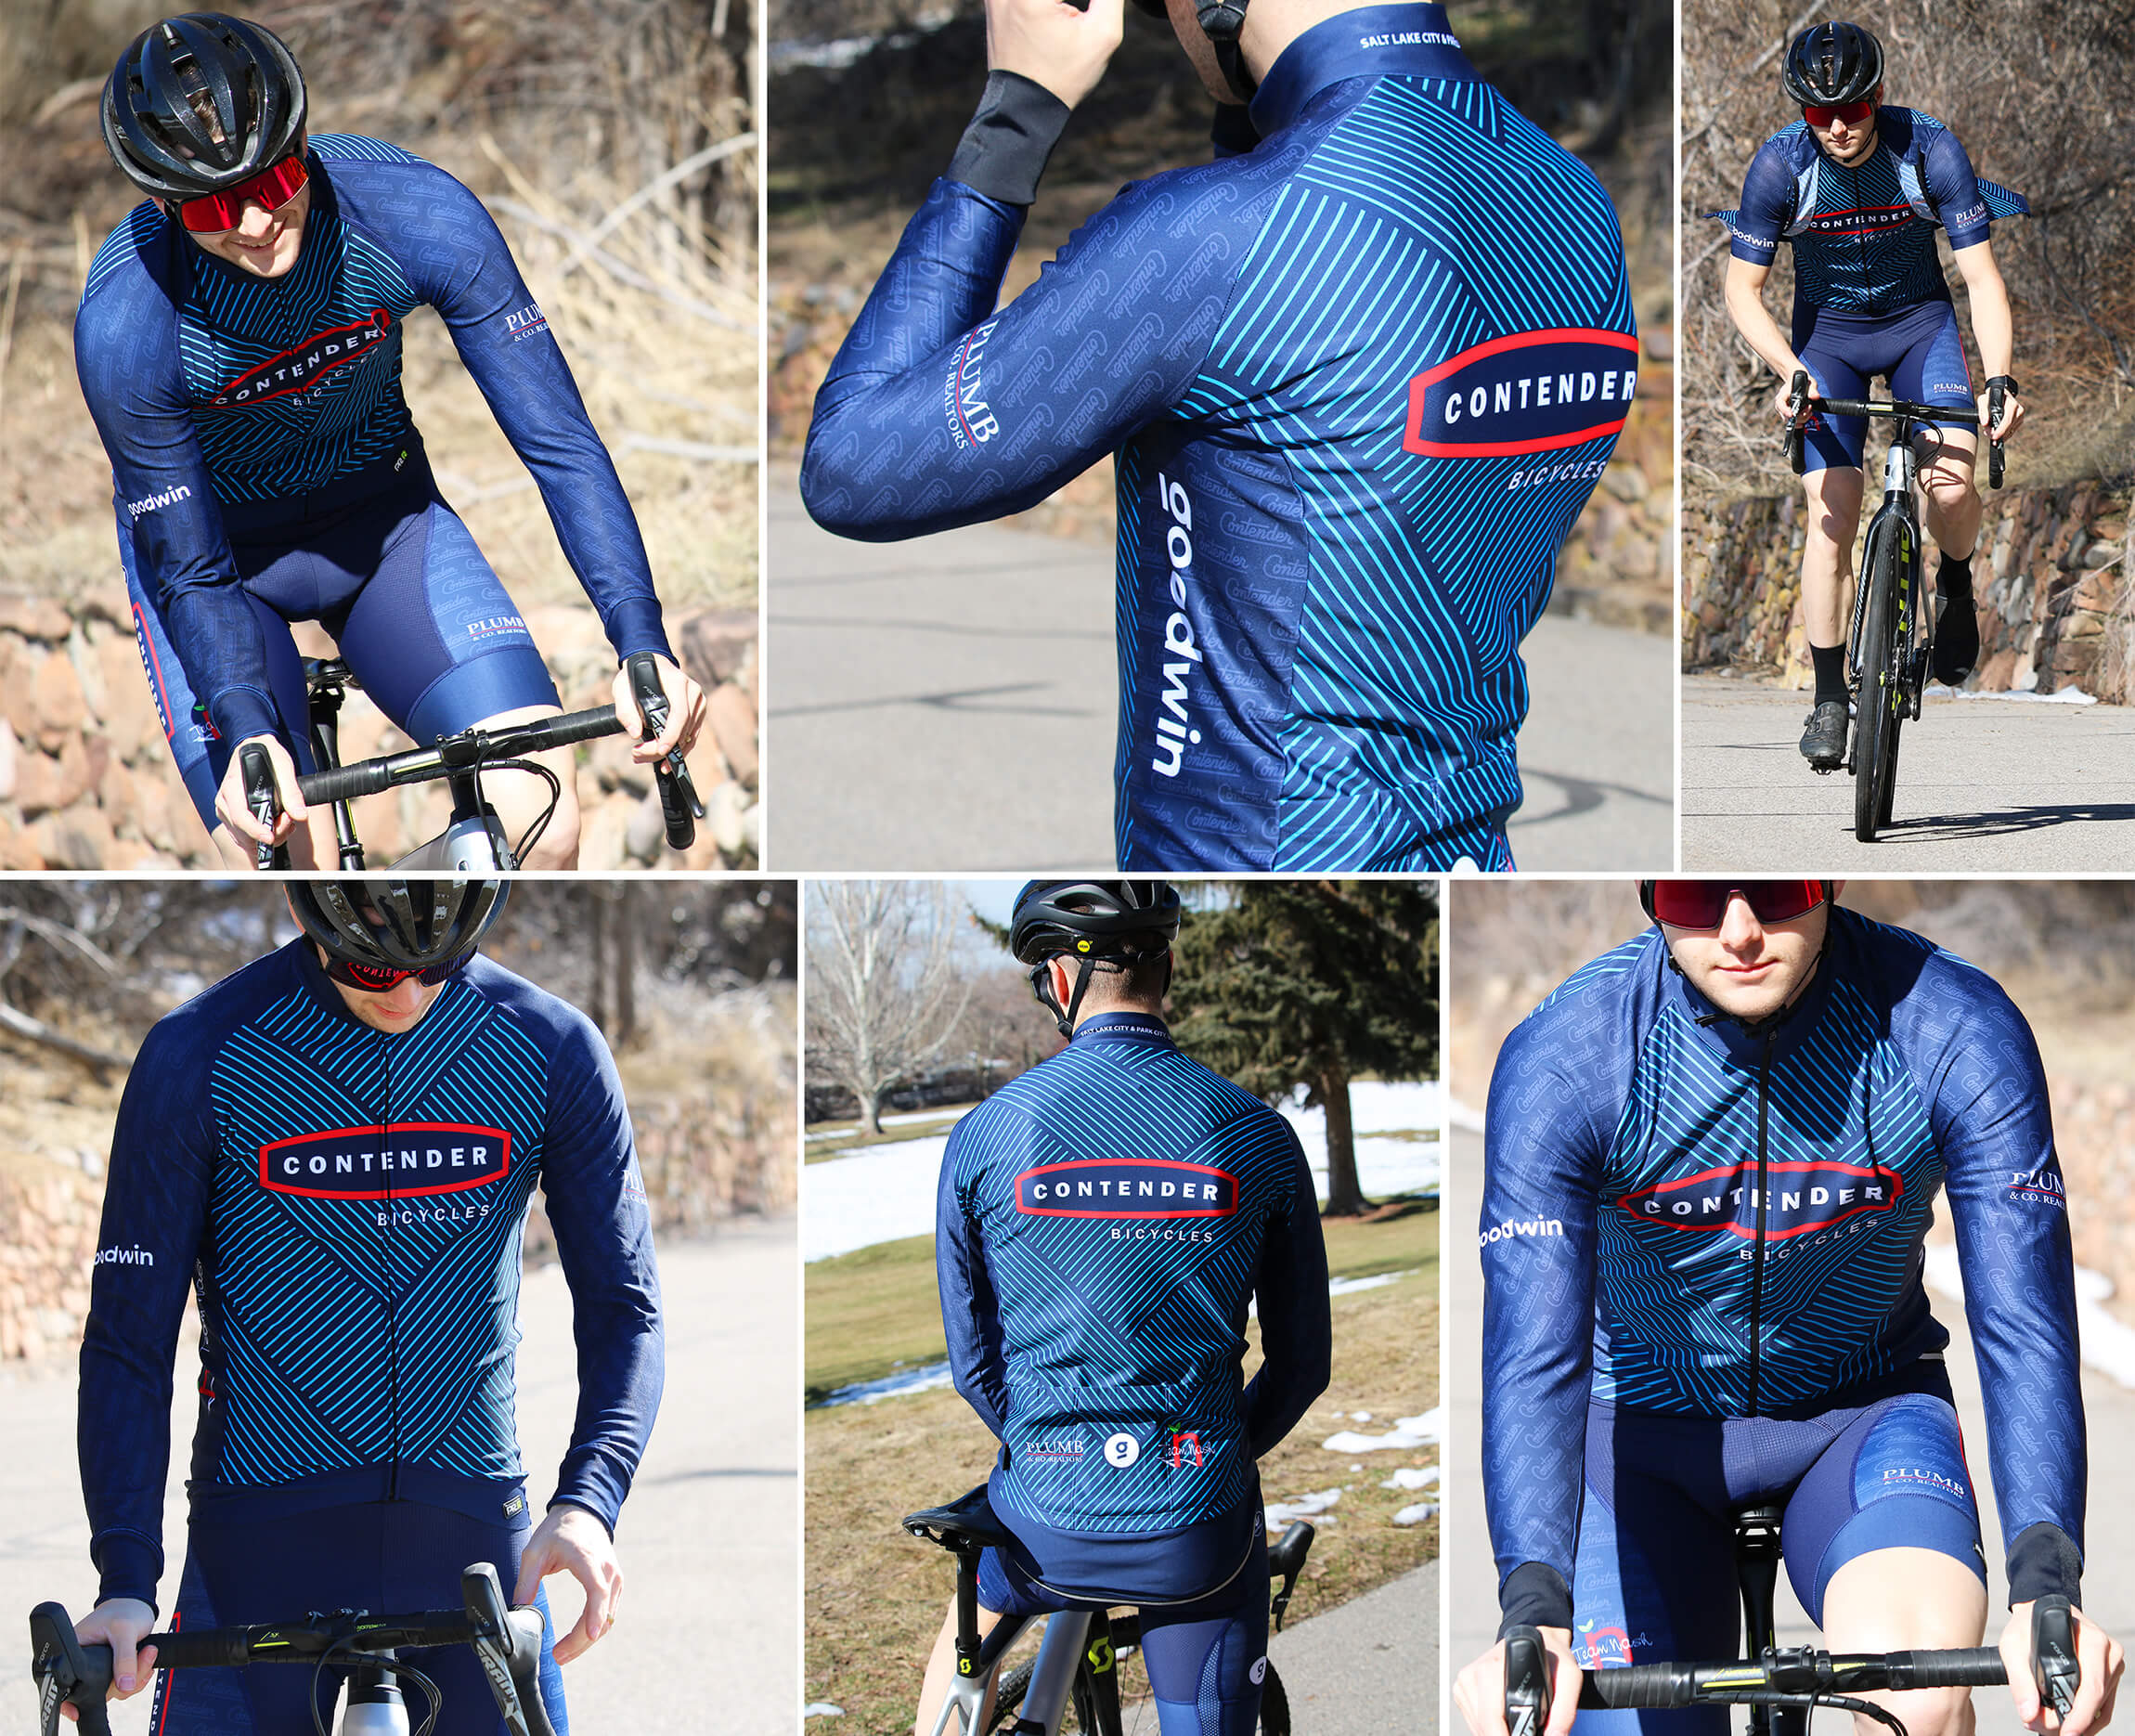 2020 Contender Bicycles Club Clothing Kit - Details